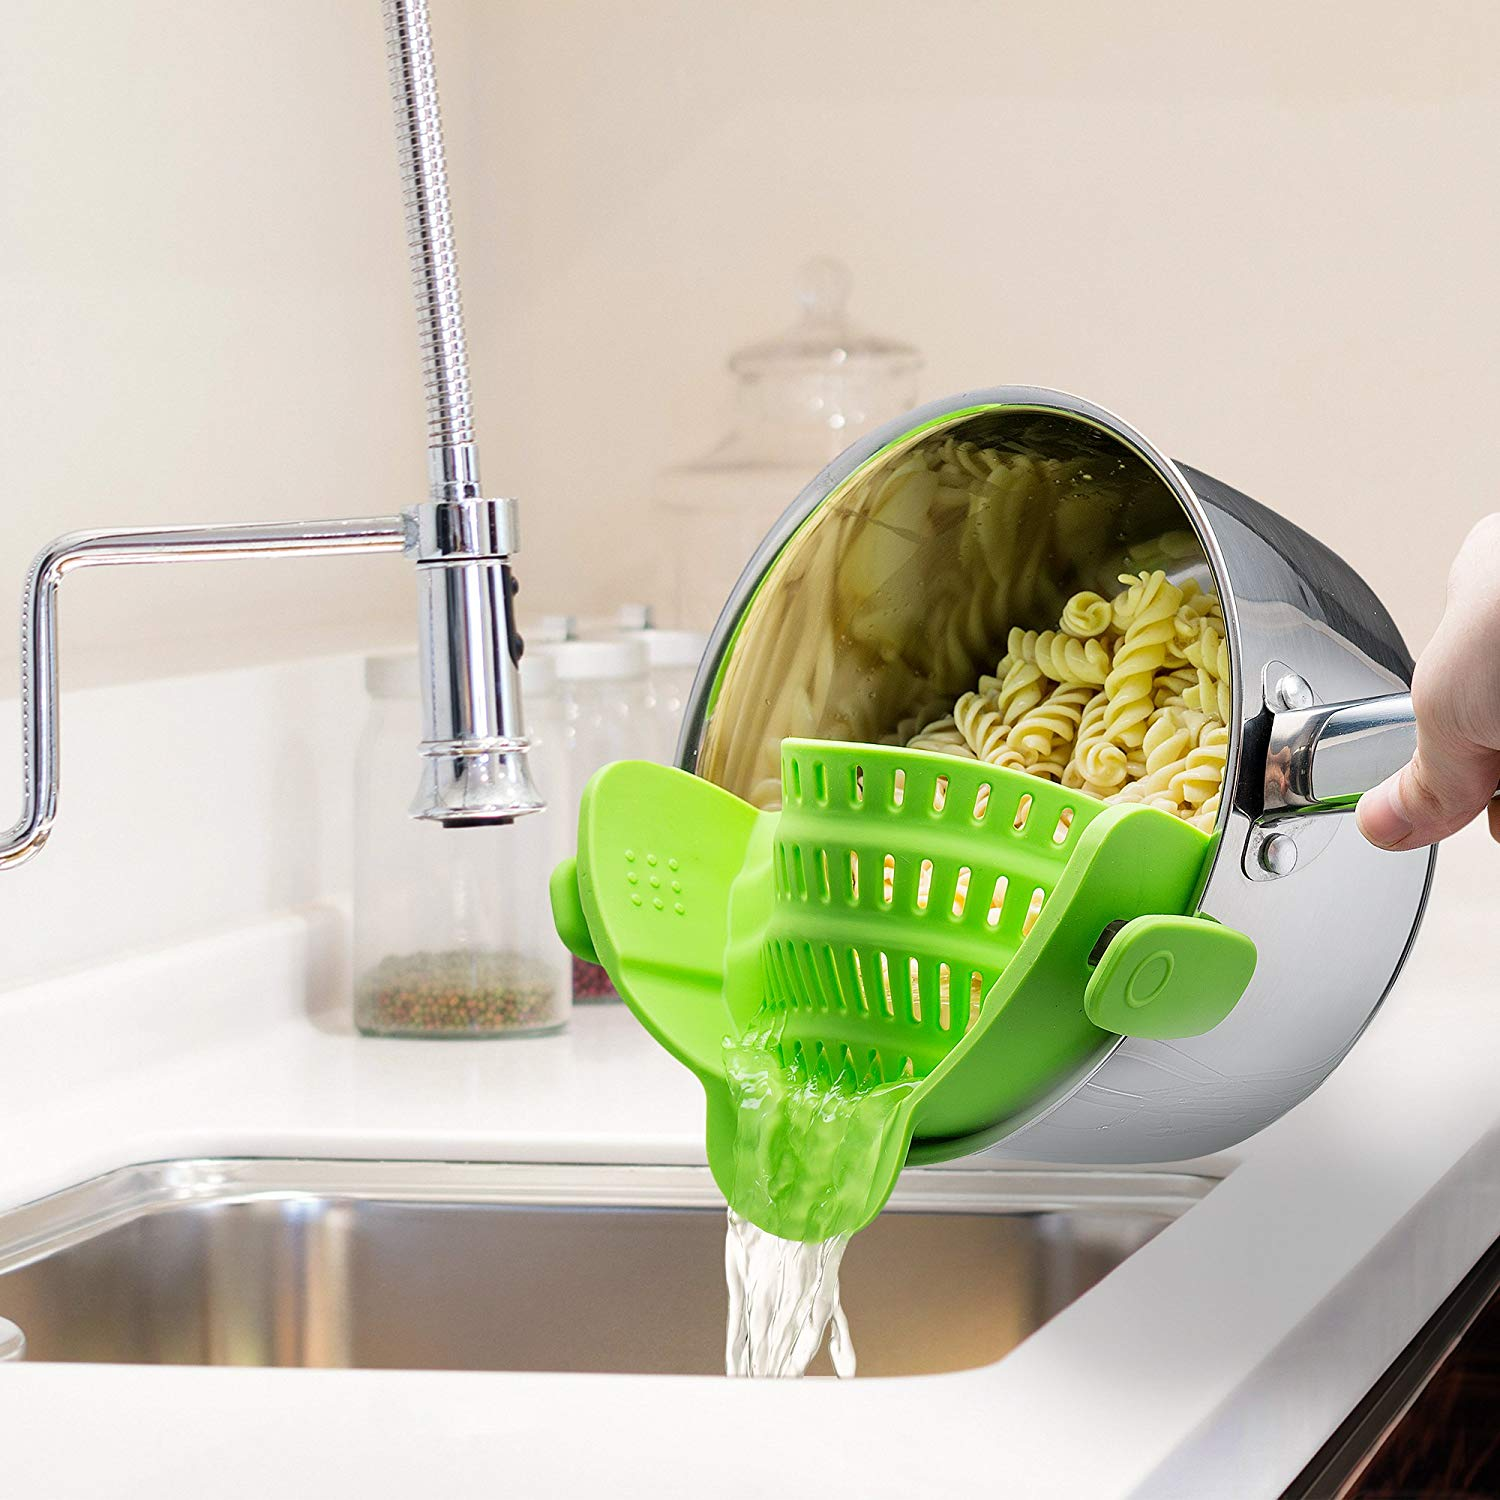 https://www.amazon.com/Kitchen-Gizmo-Strainer-Silicone-Colander/dp/B018W9JII0/ref=as_li_ss_tl?crid=RA92Q6JVNL7W&keywords=kitchen+gizmo+snap+n+strain&qid=1557347953&s=gateway&sprefix=kitchen+gizmo,aps,163&sr=8-1-spons&psc=1&linkCode=sl1&tag=usatgallery-20&linkId=6d7ccc374821e079c6be069d75b0d53d&language=en_US